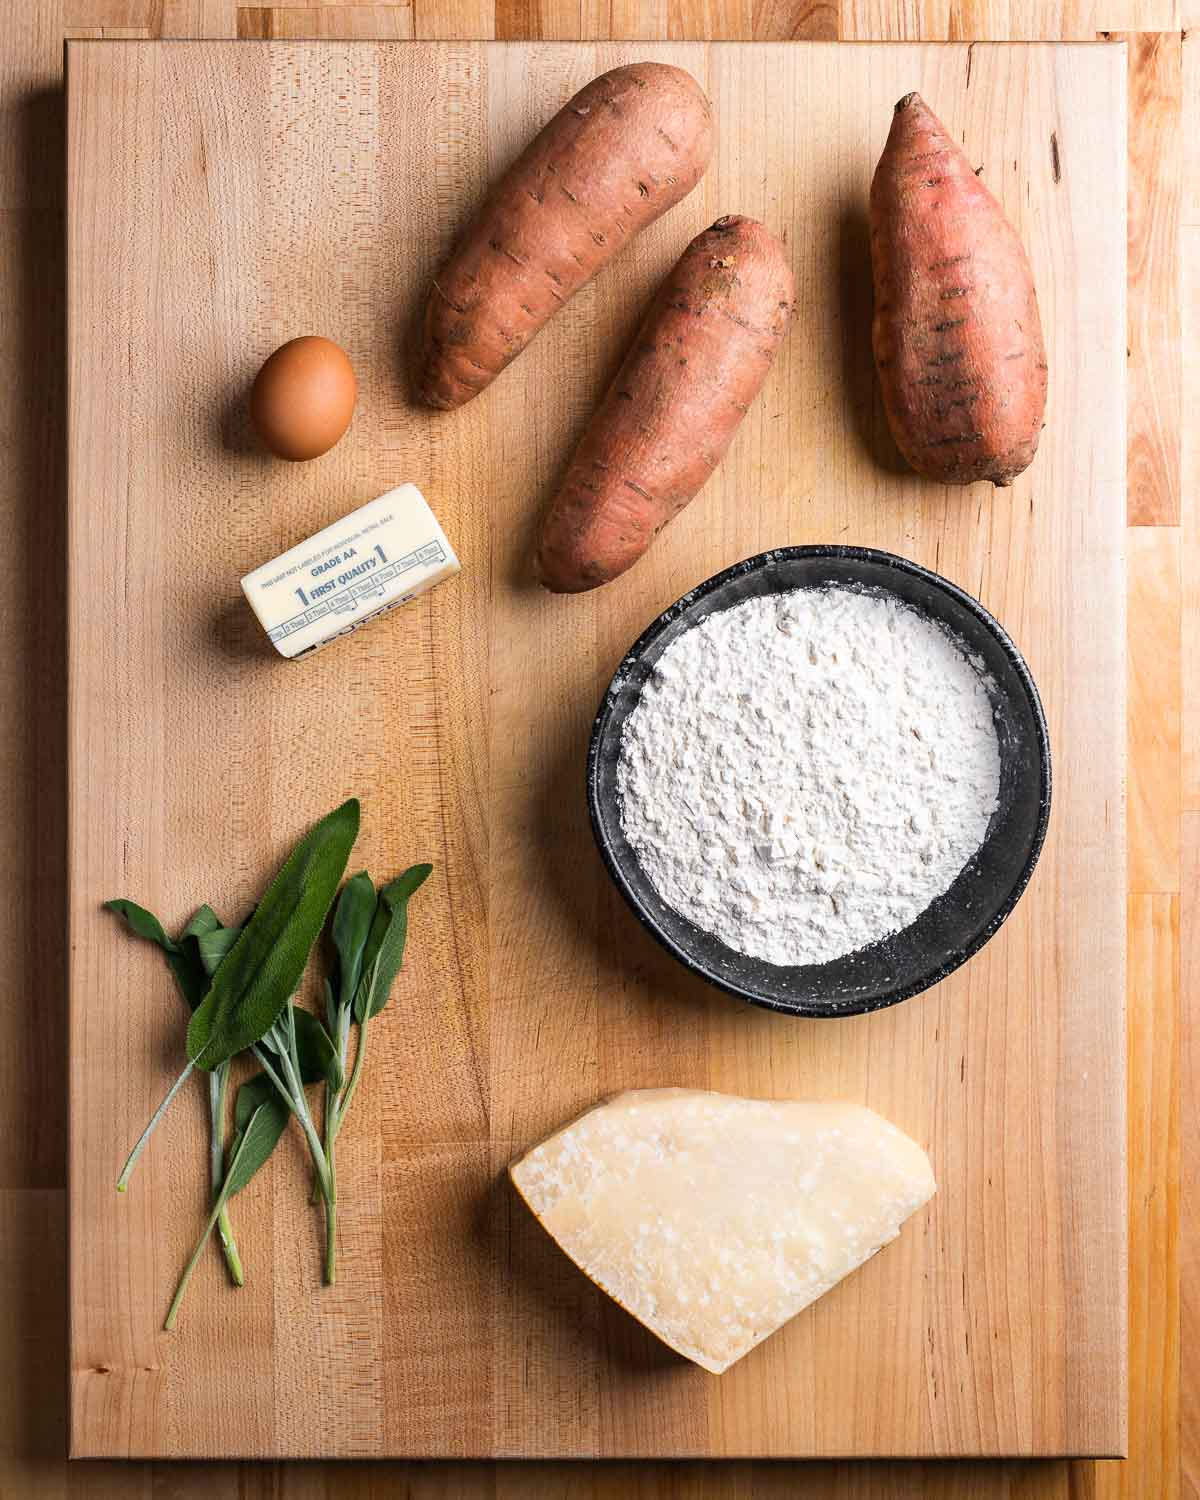 Ingredients shown: sweet potatoes, egg, butter, flour, sage, and parmesan cheese.